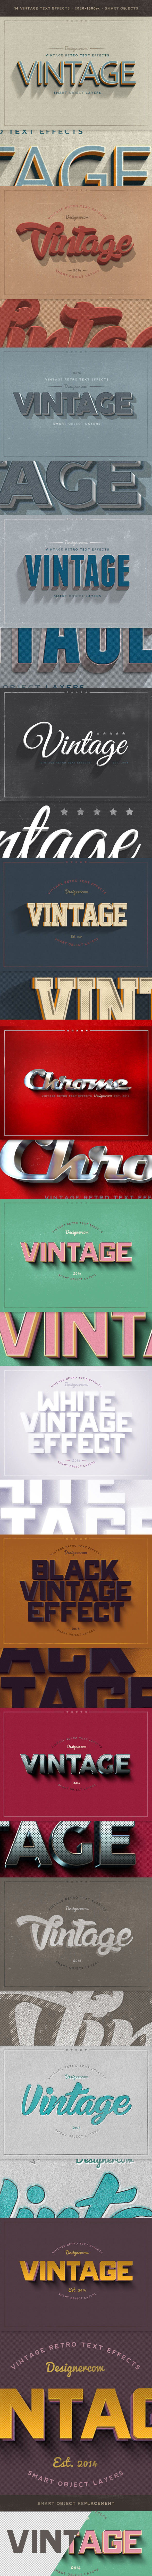 New Vintage Retro Text Effects